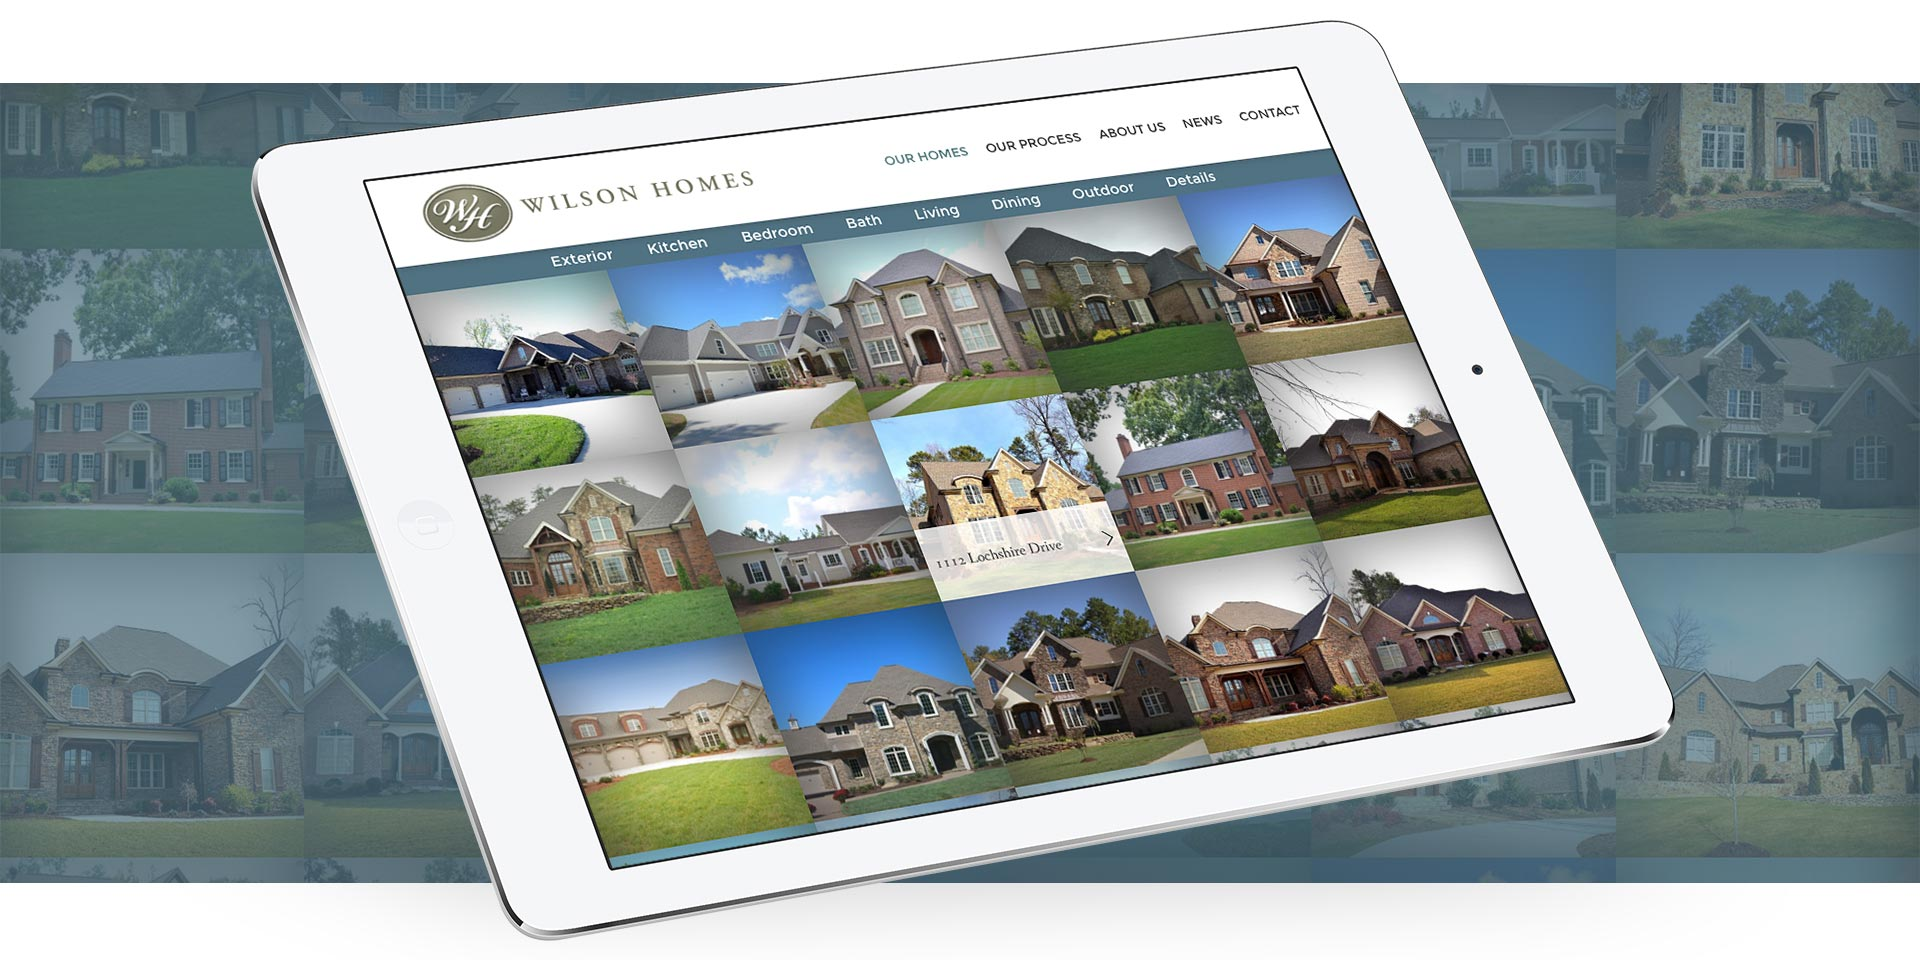 Wilson Homes - Website Design by Springer Studios, Wilmington, NC